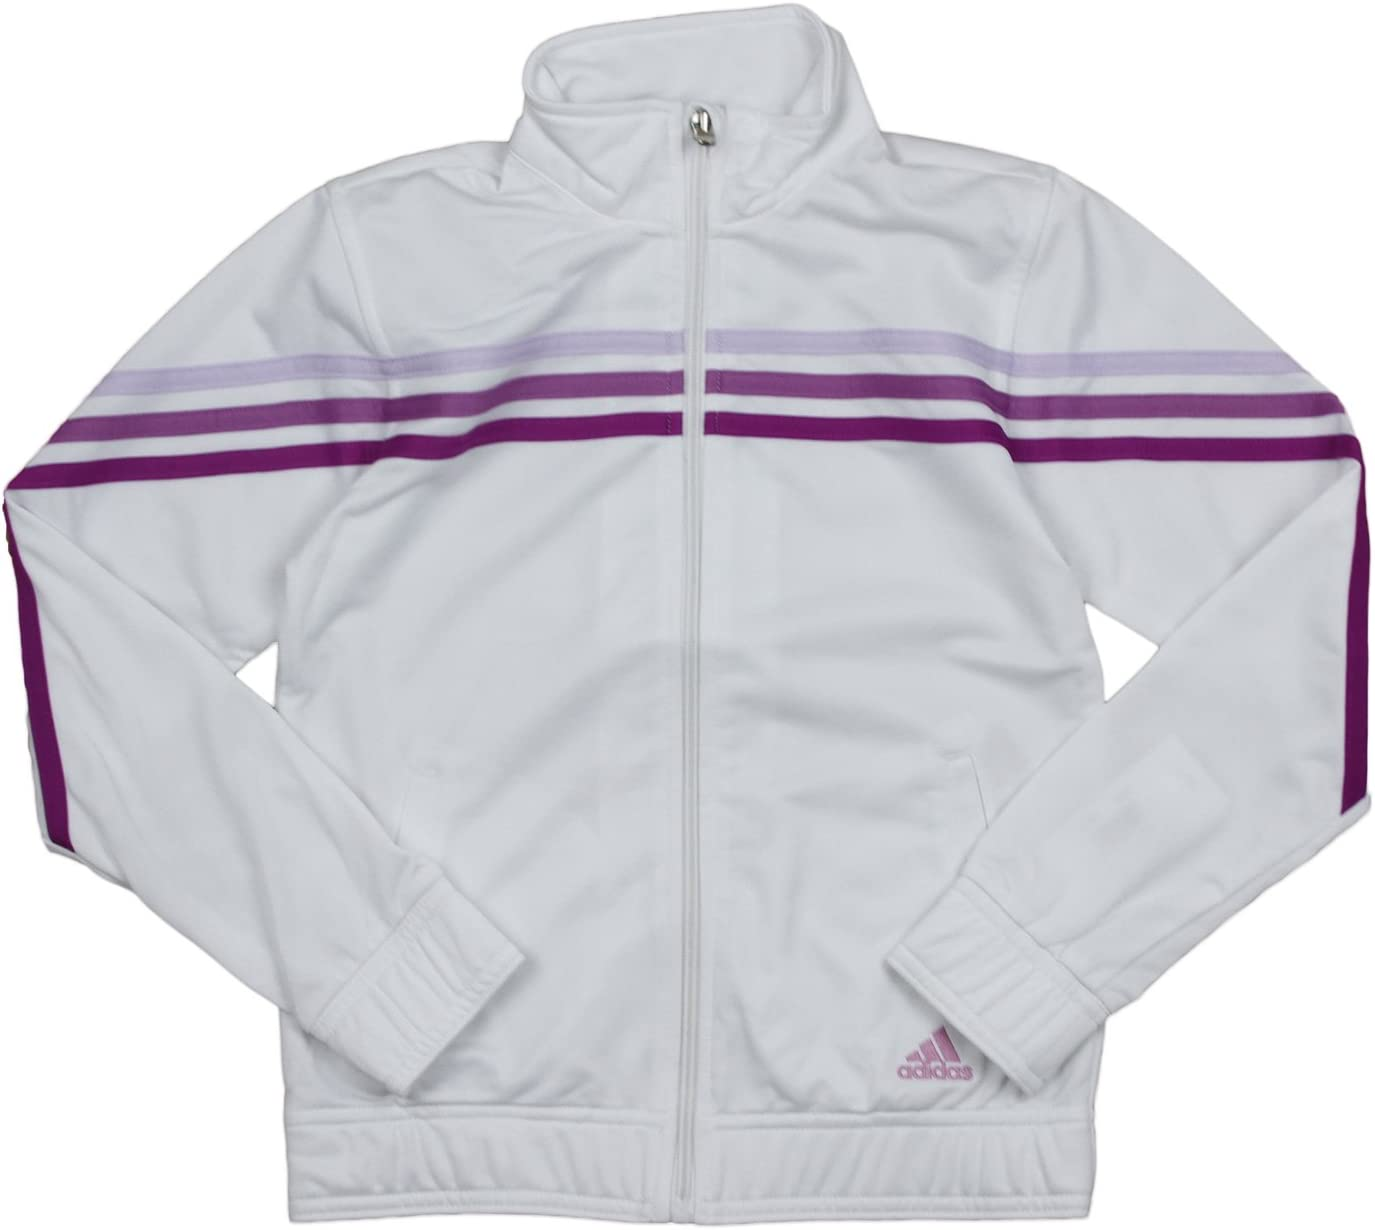 adidas Girls (Youth 7-16) Pursuit Full Zip Striped Track Jacket